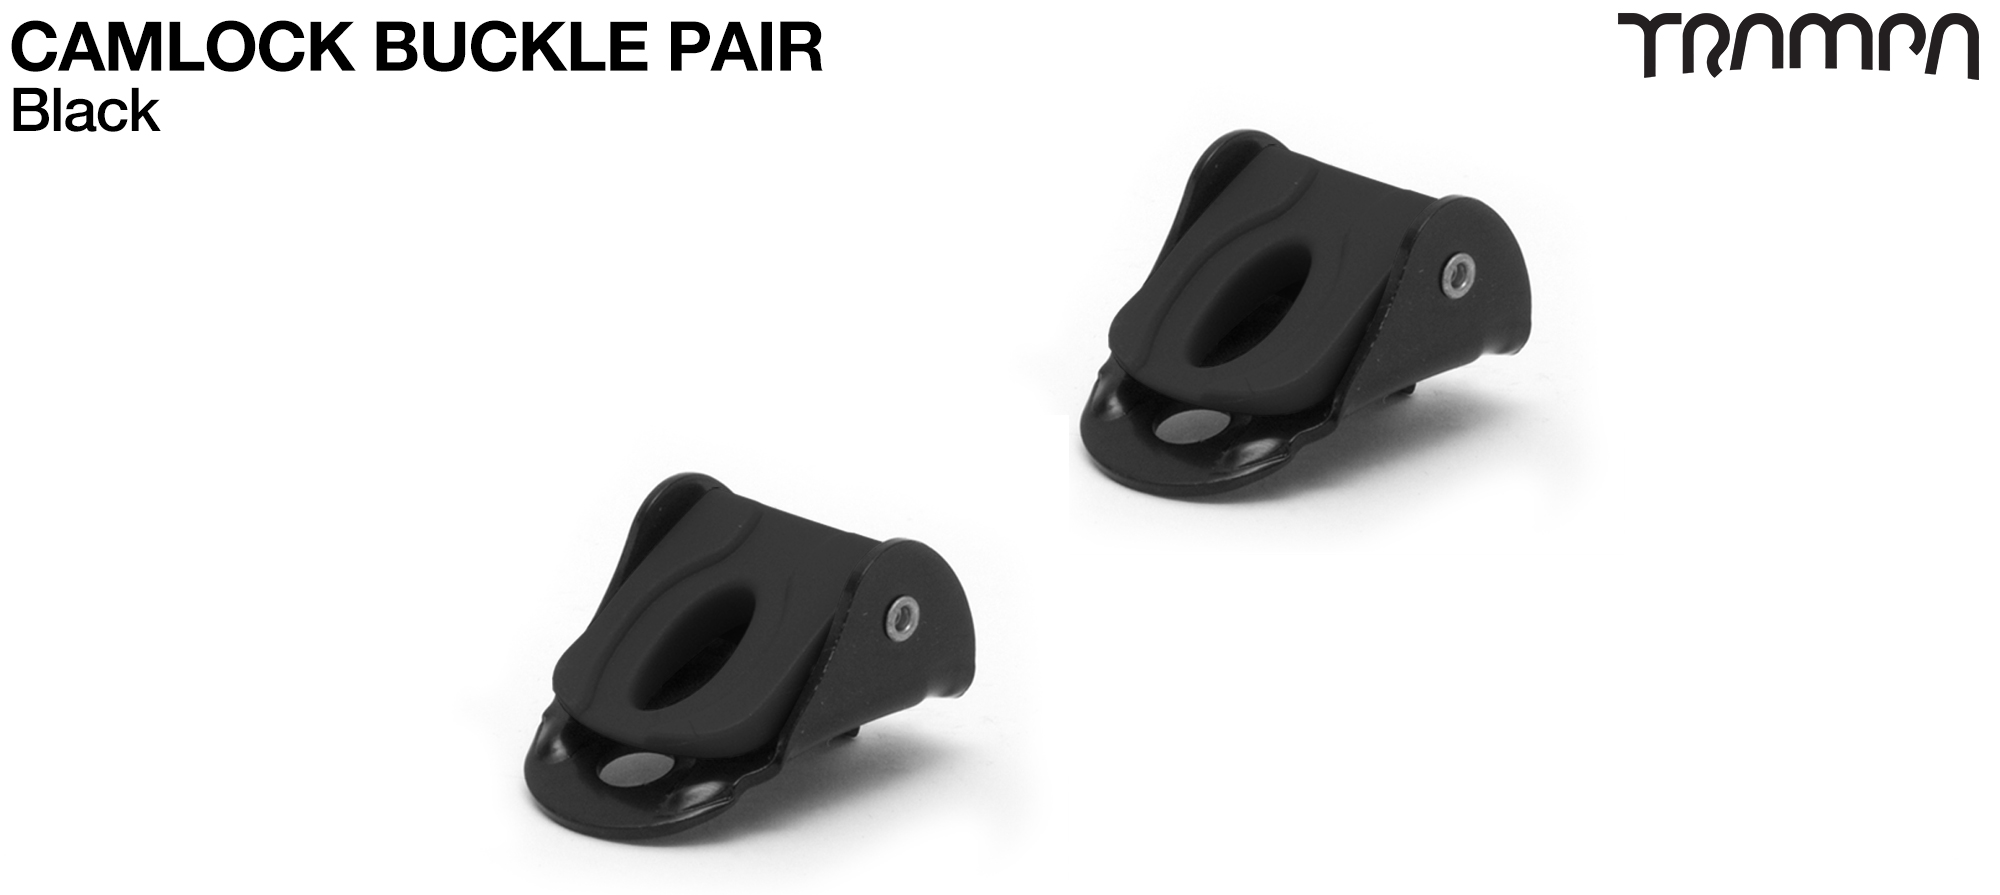 Camlock buckles for foot & heel strap Bindings - BLACK x 2